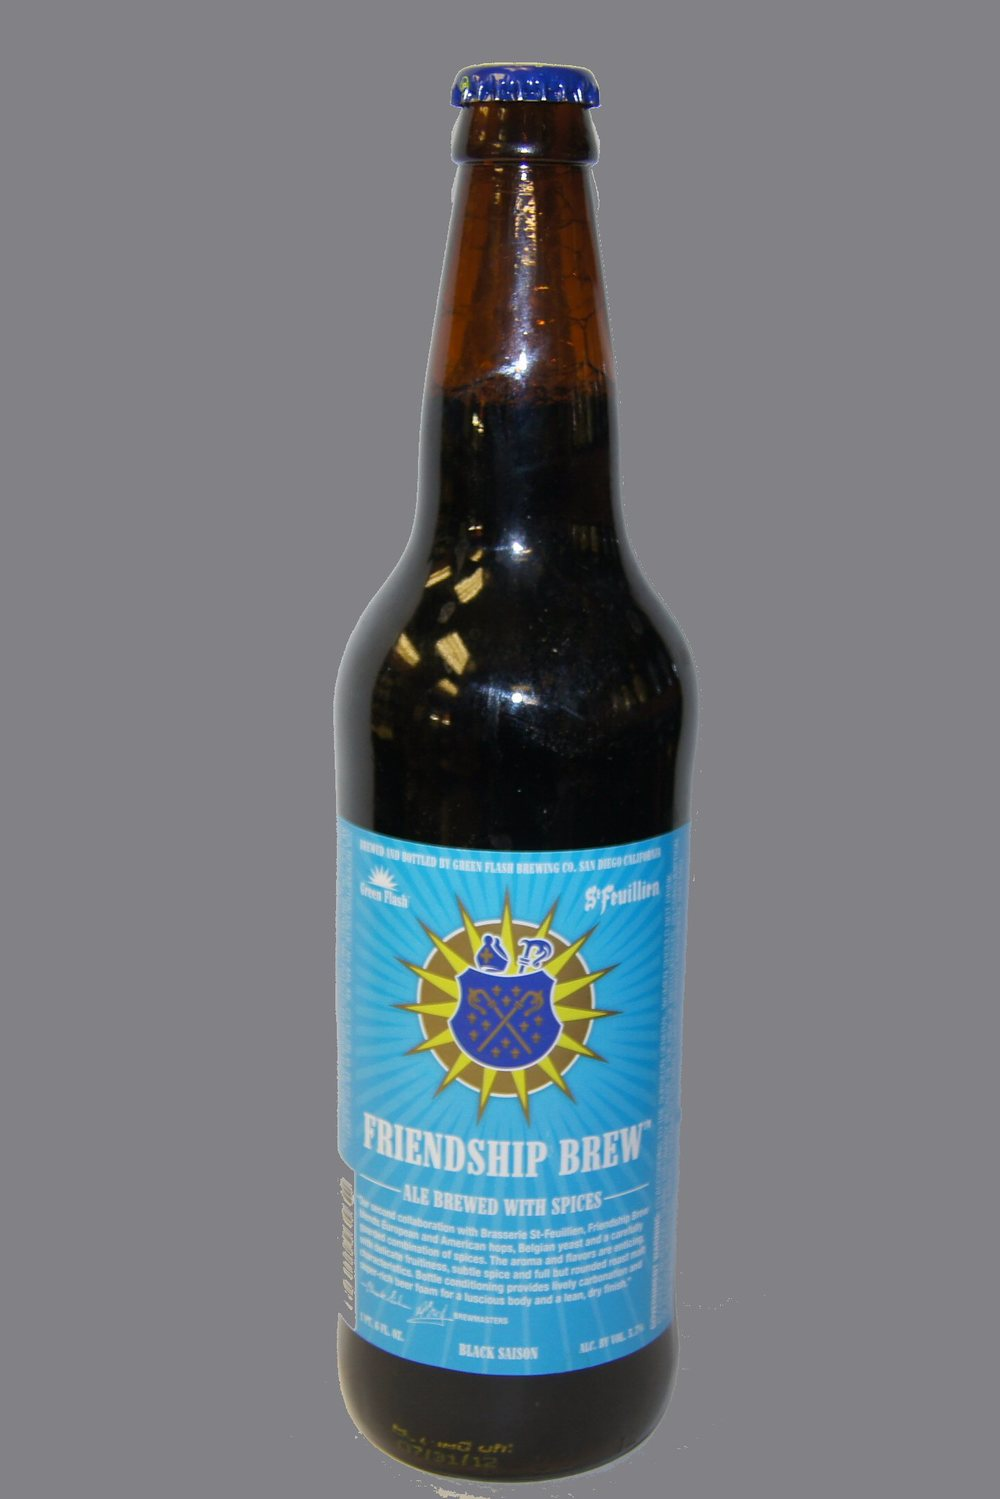 GREEN FLASH BREWERY,Friendship brew, Black Saison.jpg